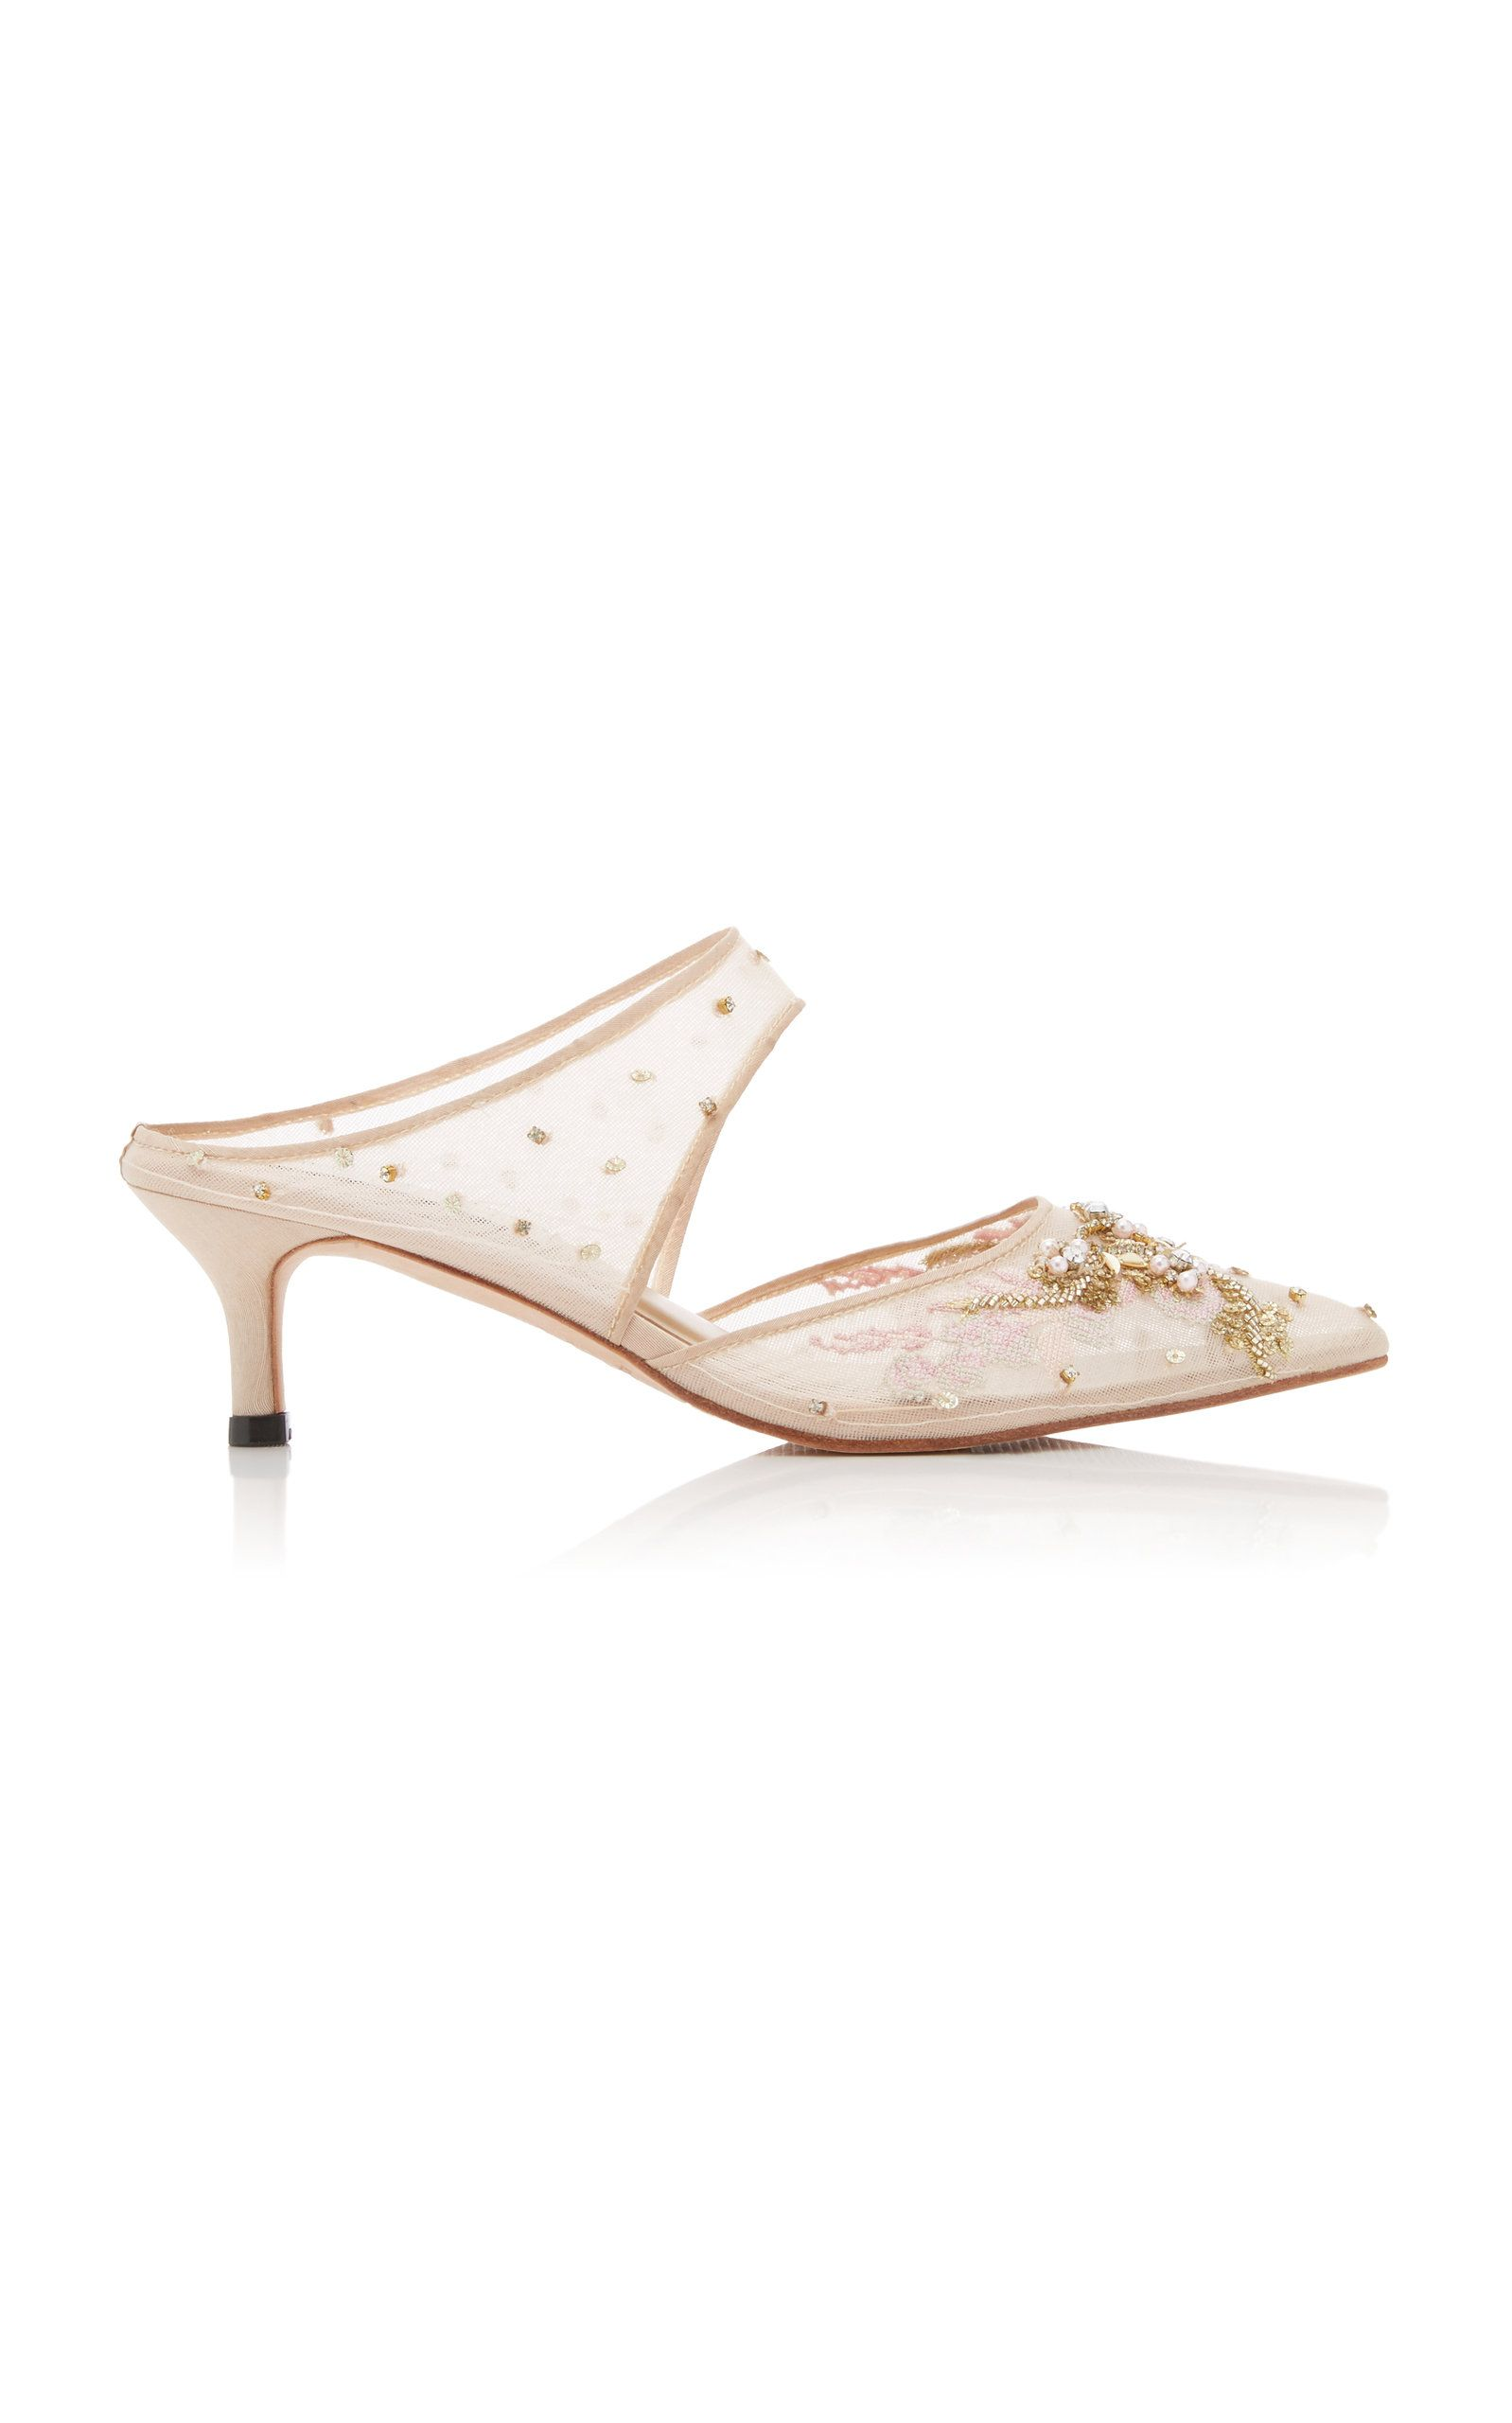 9a97128e9c5 55 Best Wedding Shoes for 2018 - Ivory